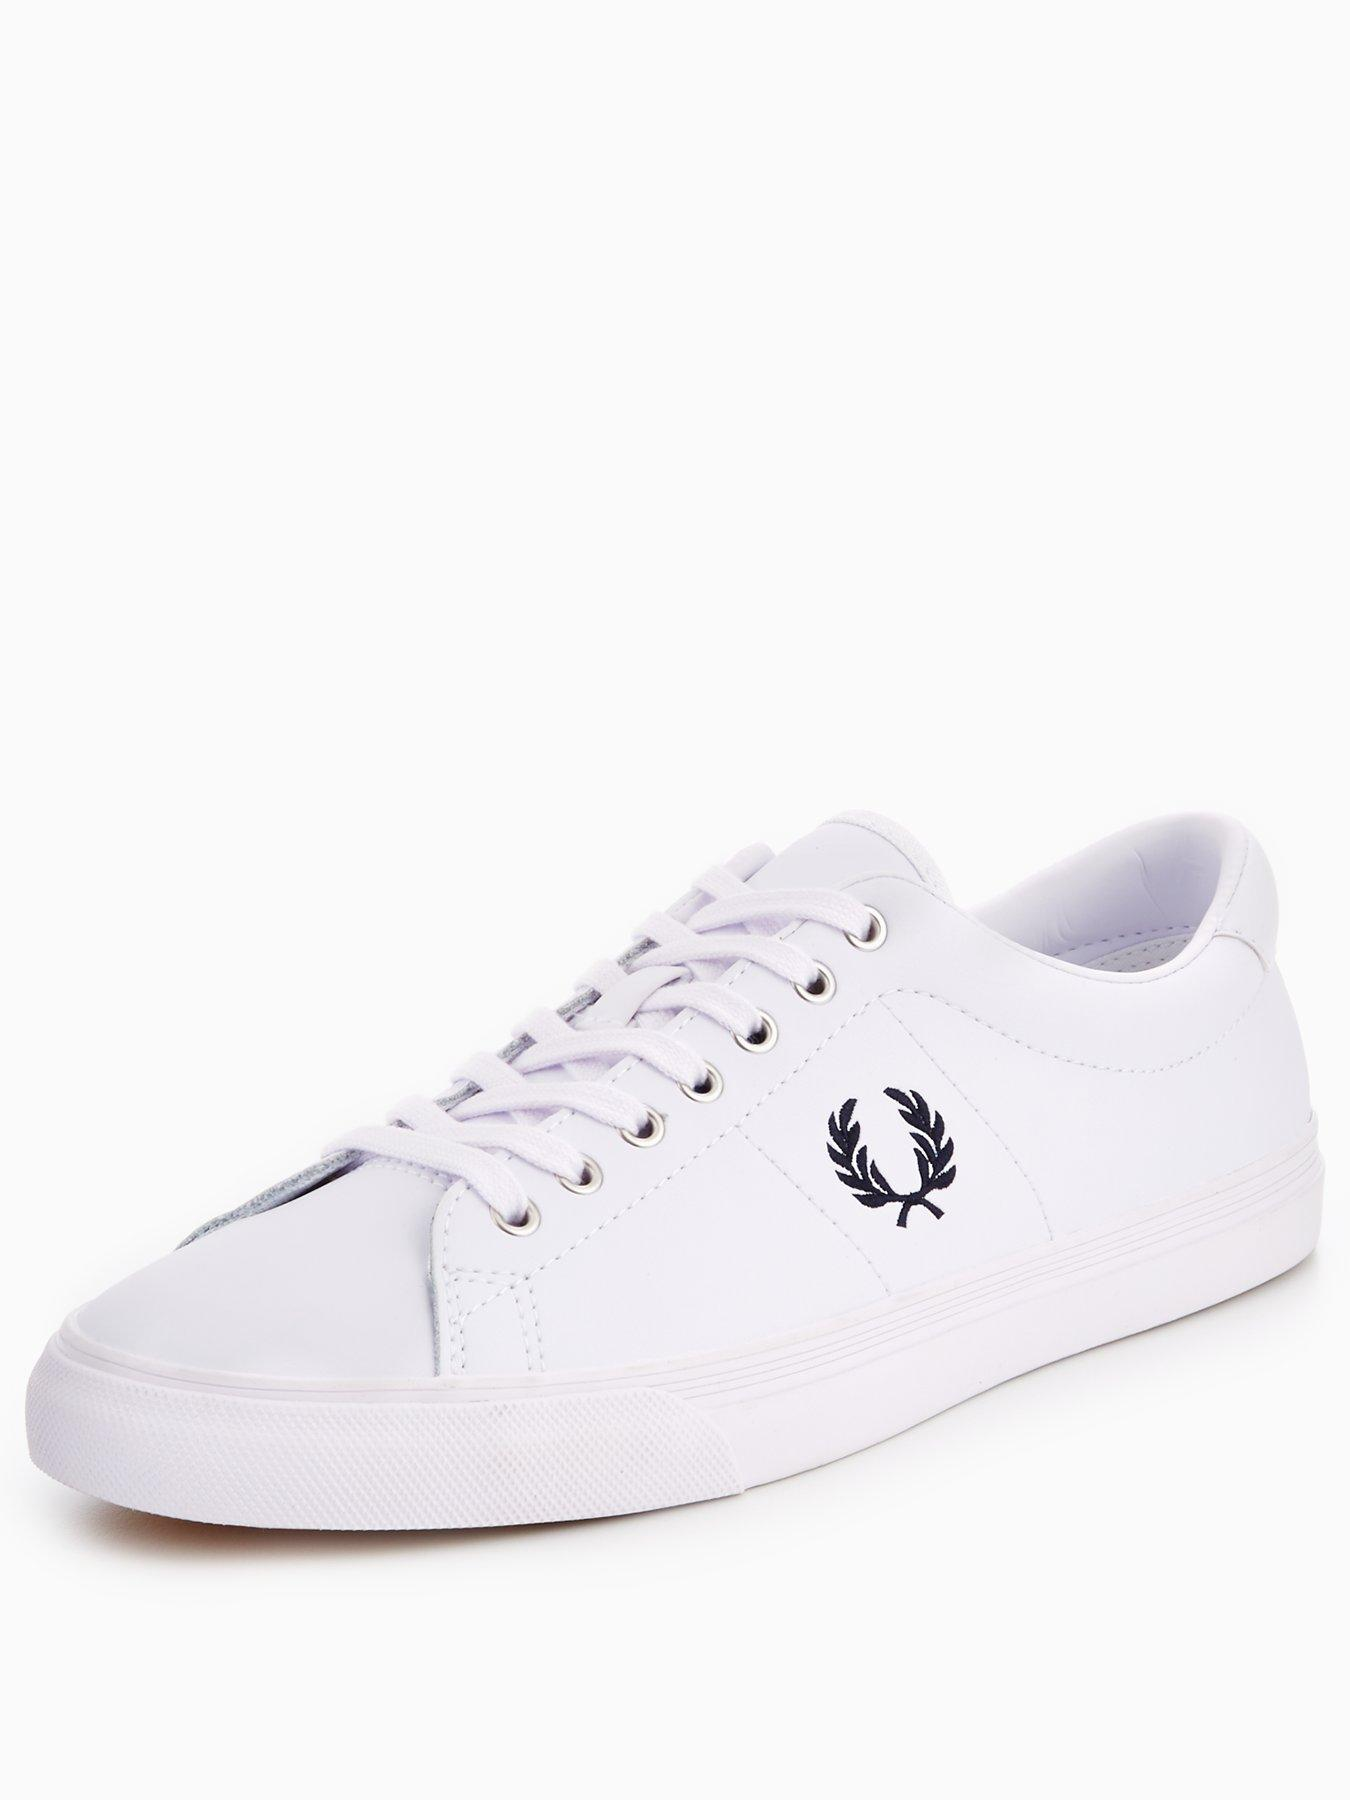 Fred Perry Underspin Leather Plimsolls 1600171477 Men's Shoes Fred Perry Pumps Plimsolls